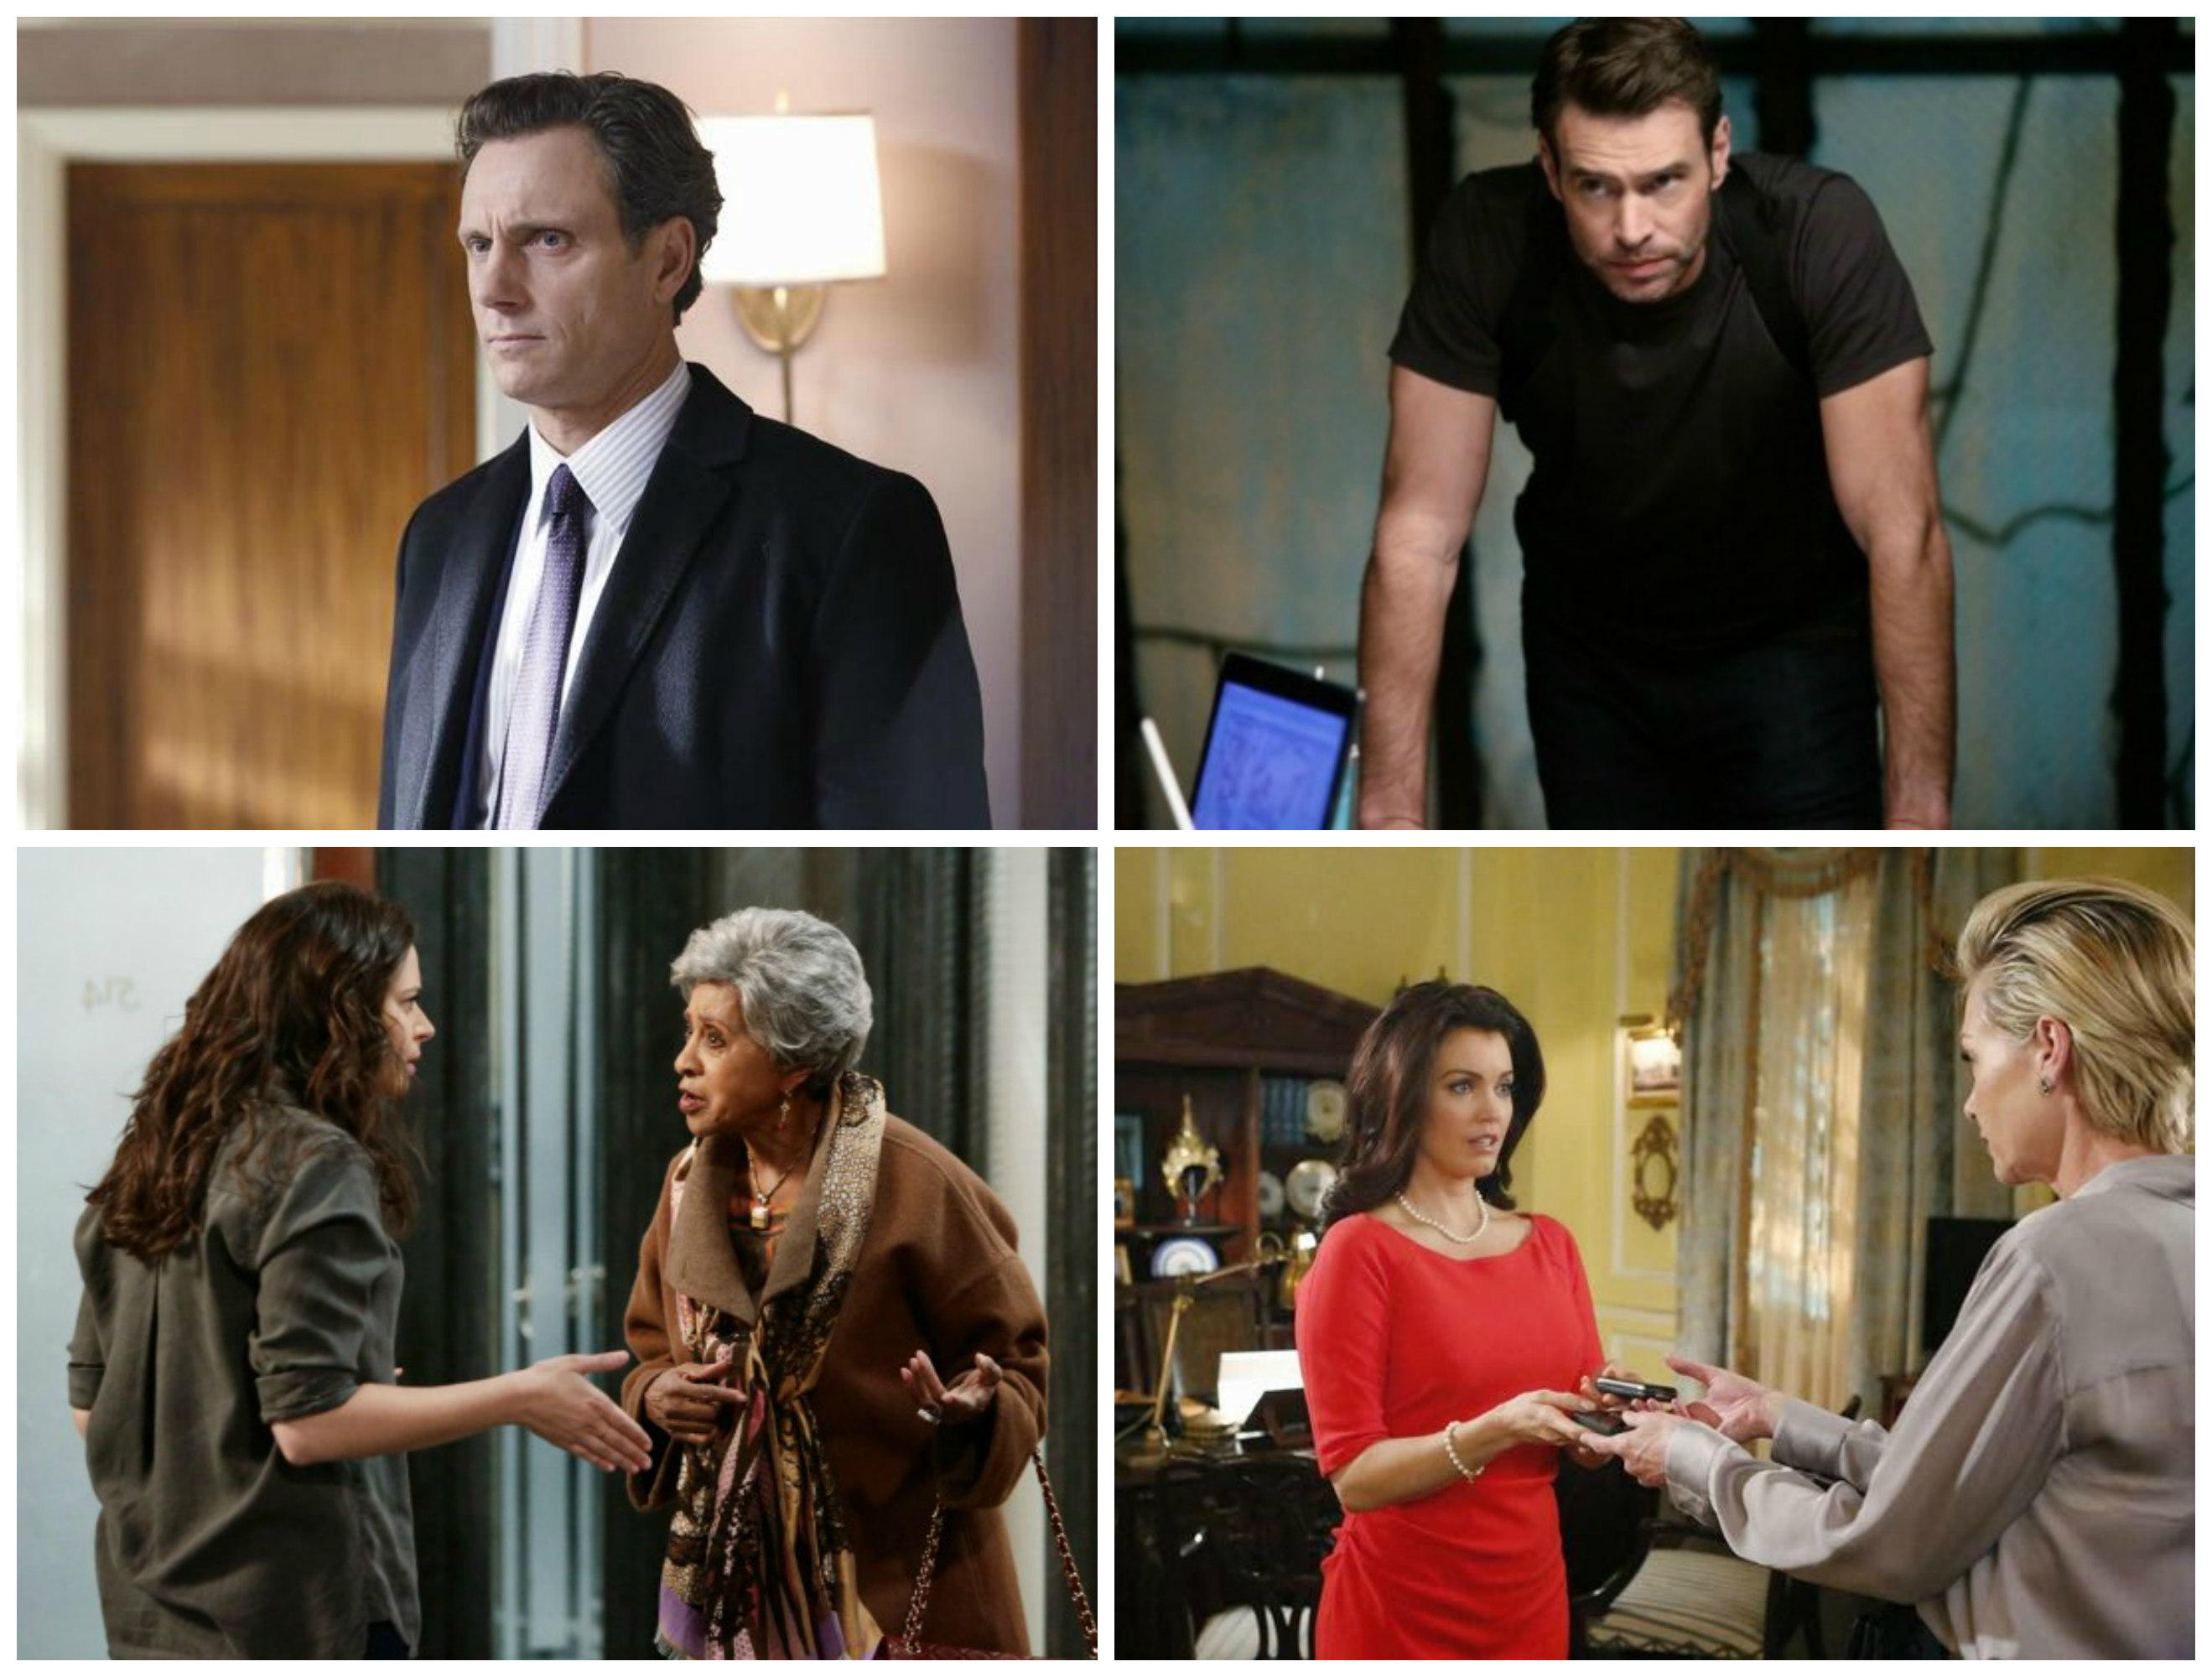 Episode 177: Scandal - S4E11 - Where's The Black Lady?